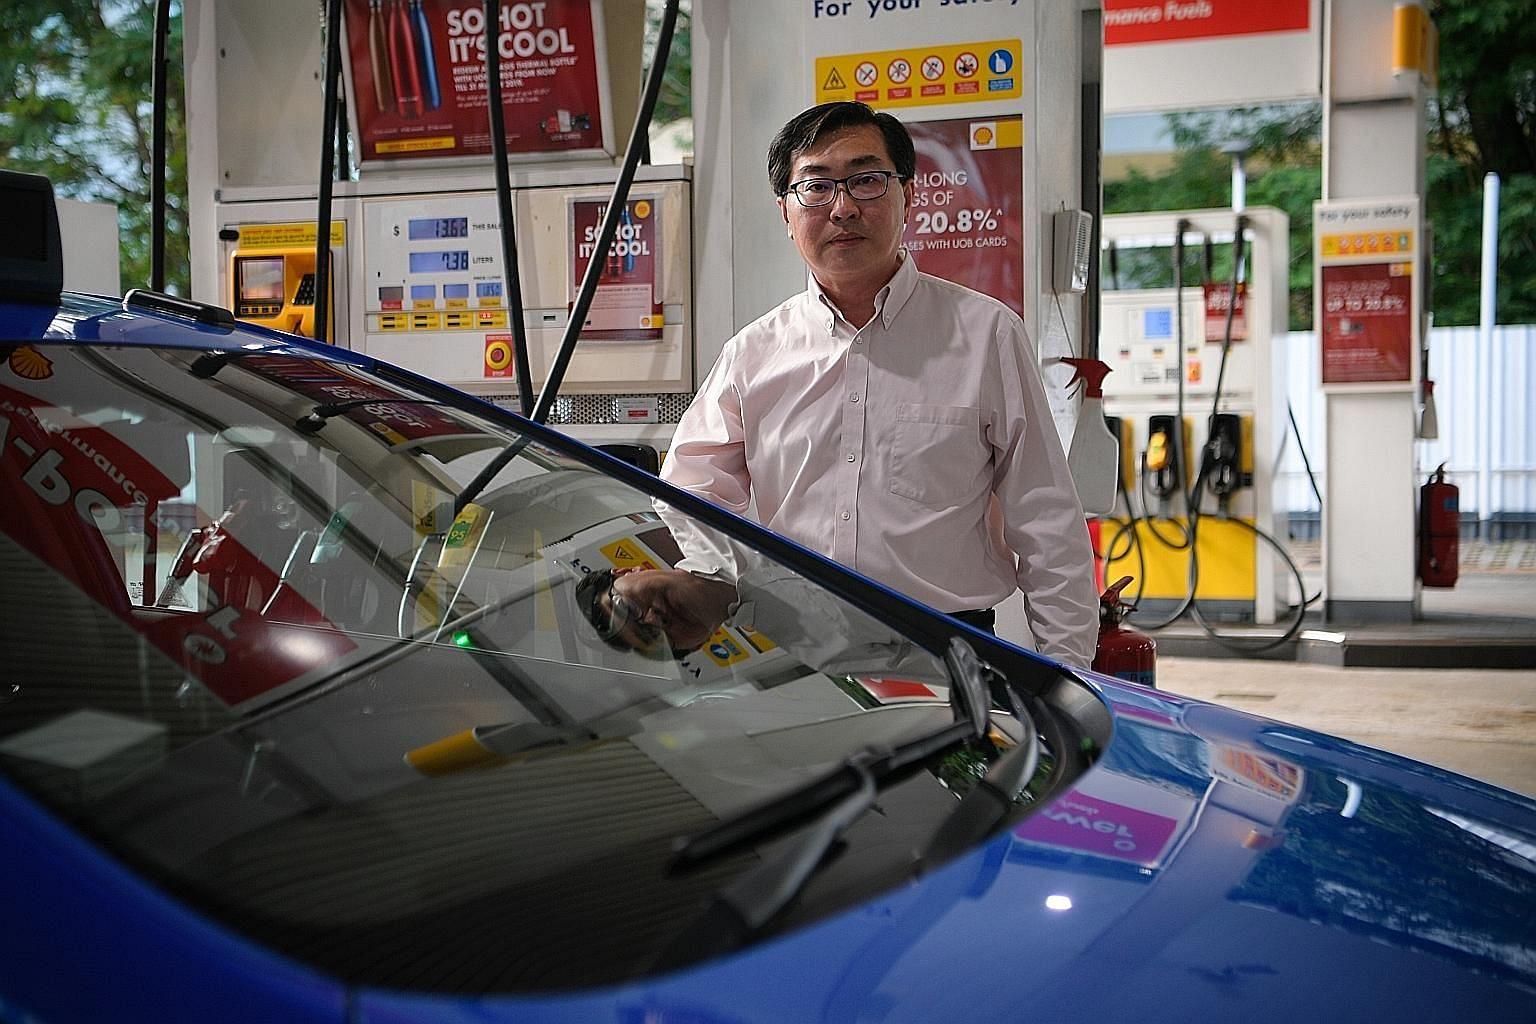 A price revision notice put up at an Esso petrol station in Toa Payoh yesterday, after the diesel duty was increased from 10 cents a litre to 20 cents a litre. Cabby Henry Tay said his running costs will likely rise by $4 to $5 a day, and the rebate